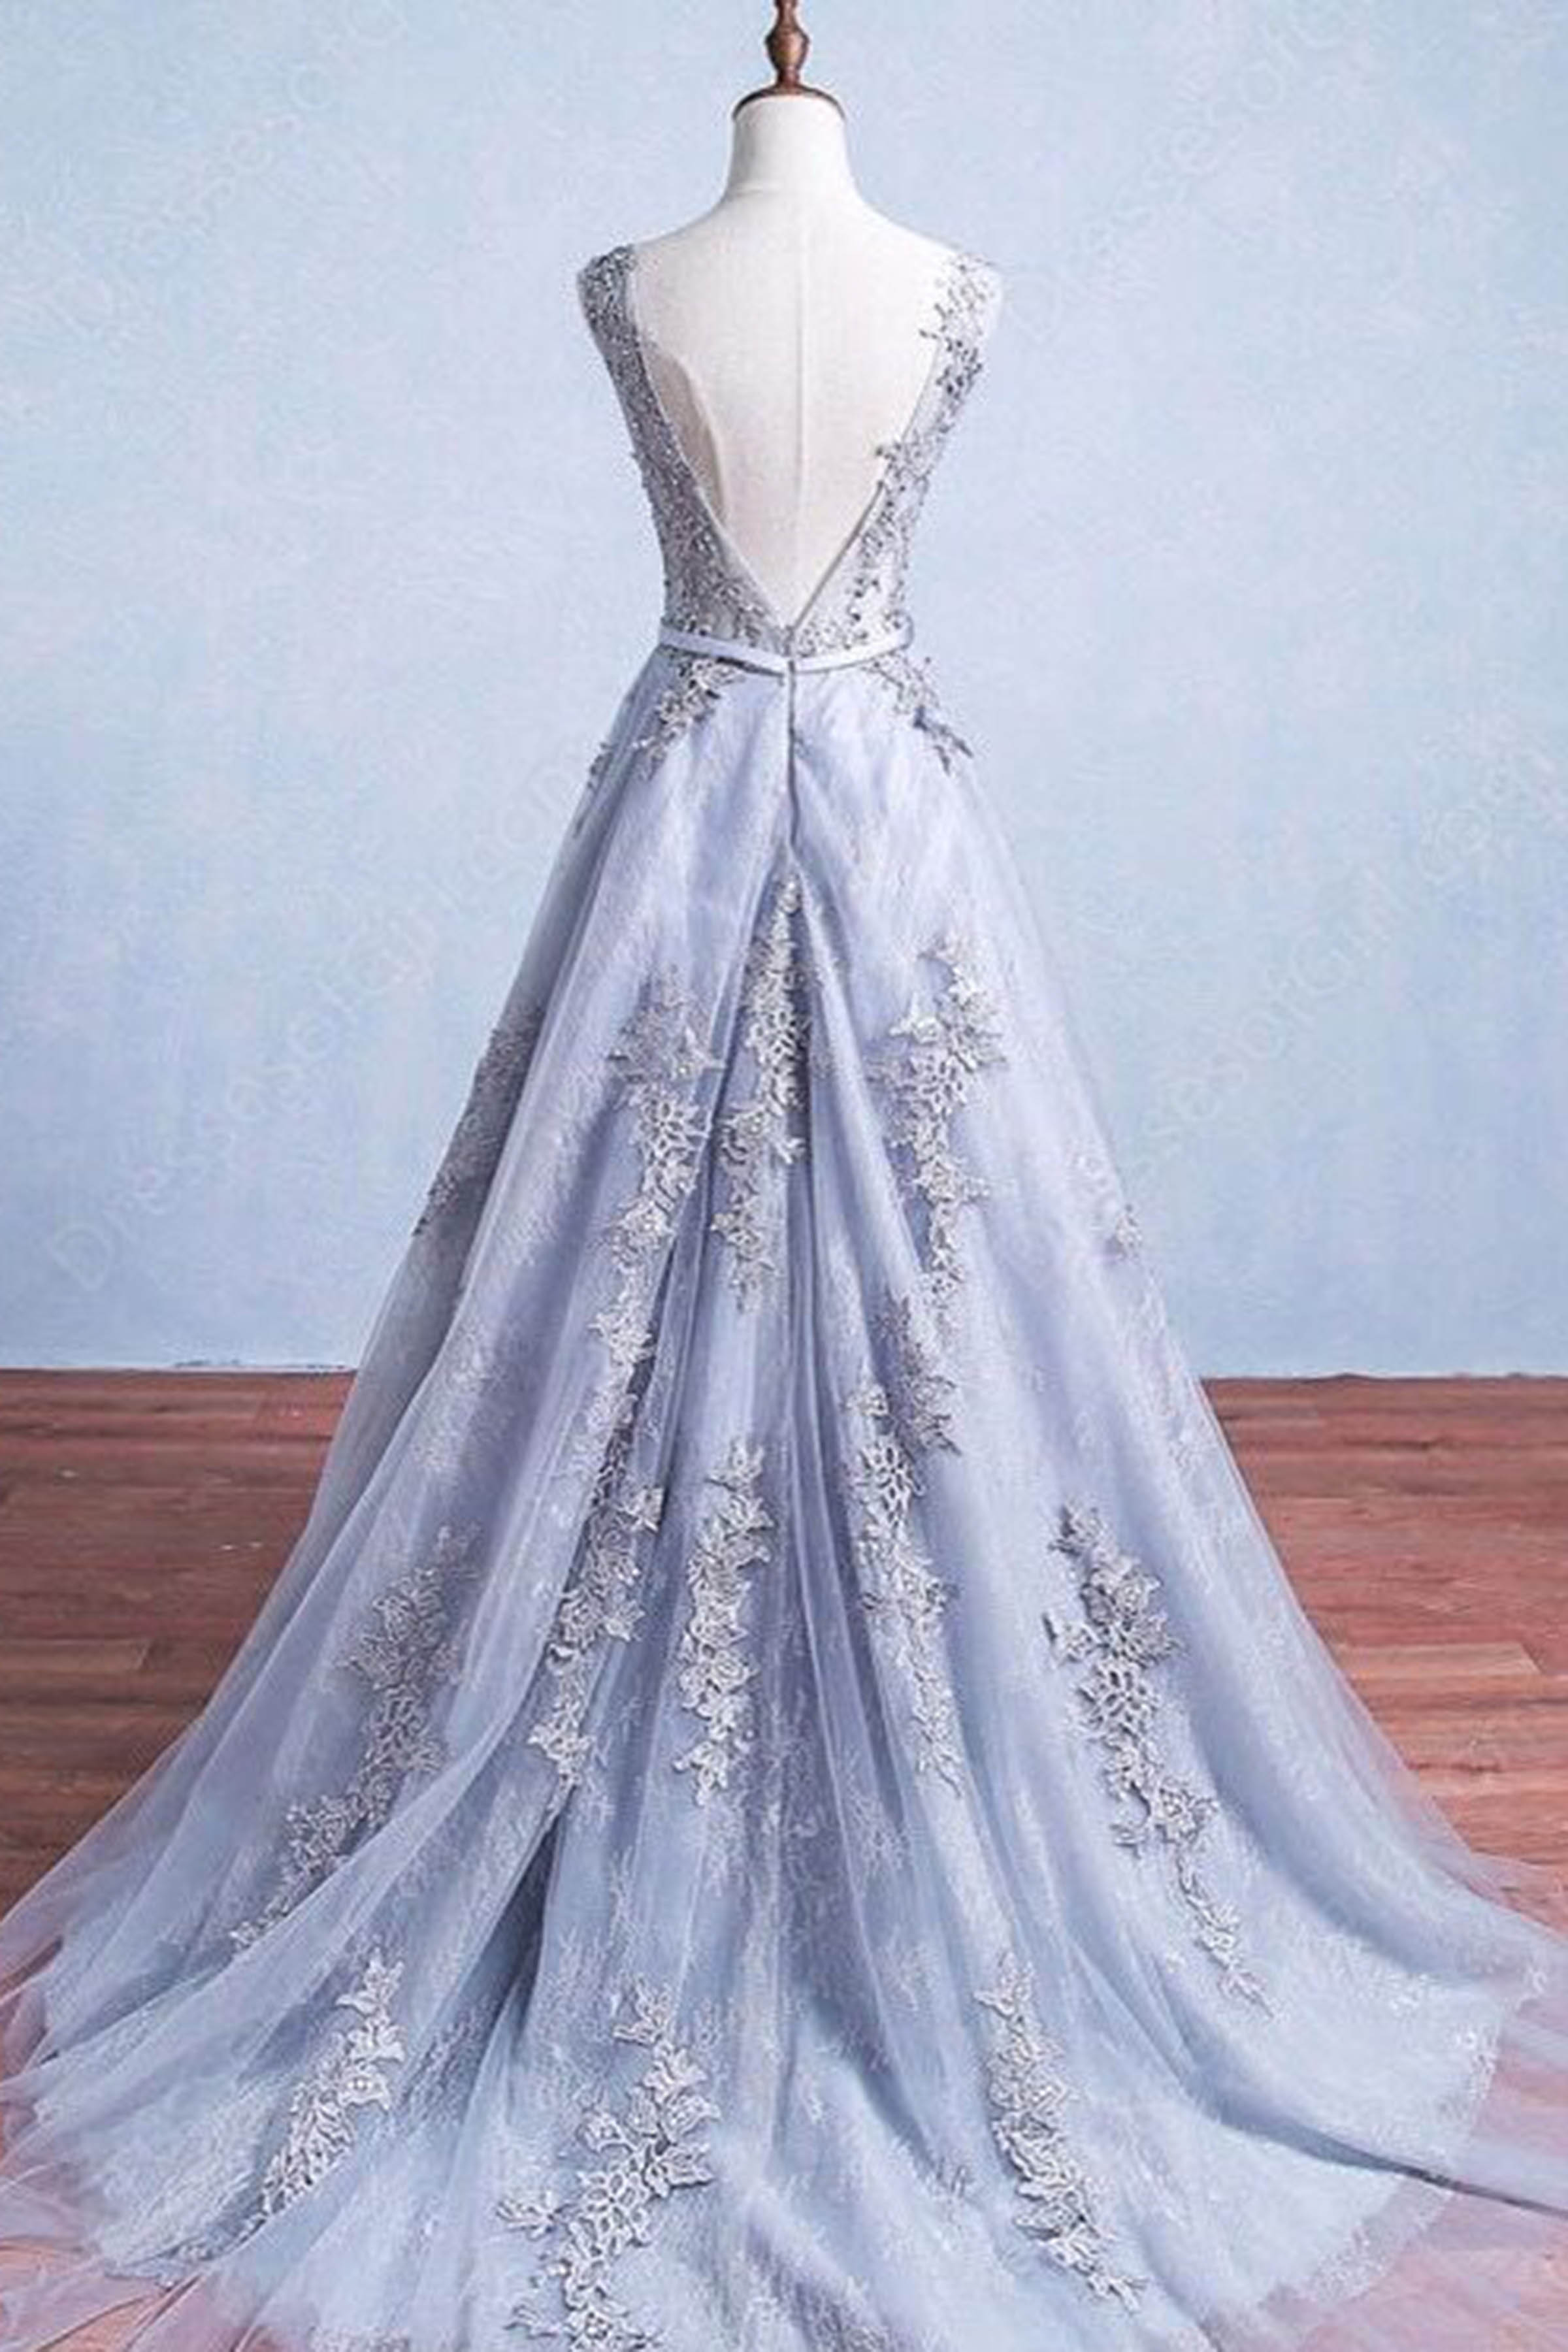 e88ce60b5f7 Glamorous A-Line Round Neck Gray Tulle Long Prom Dress on Storenvy